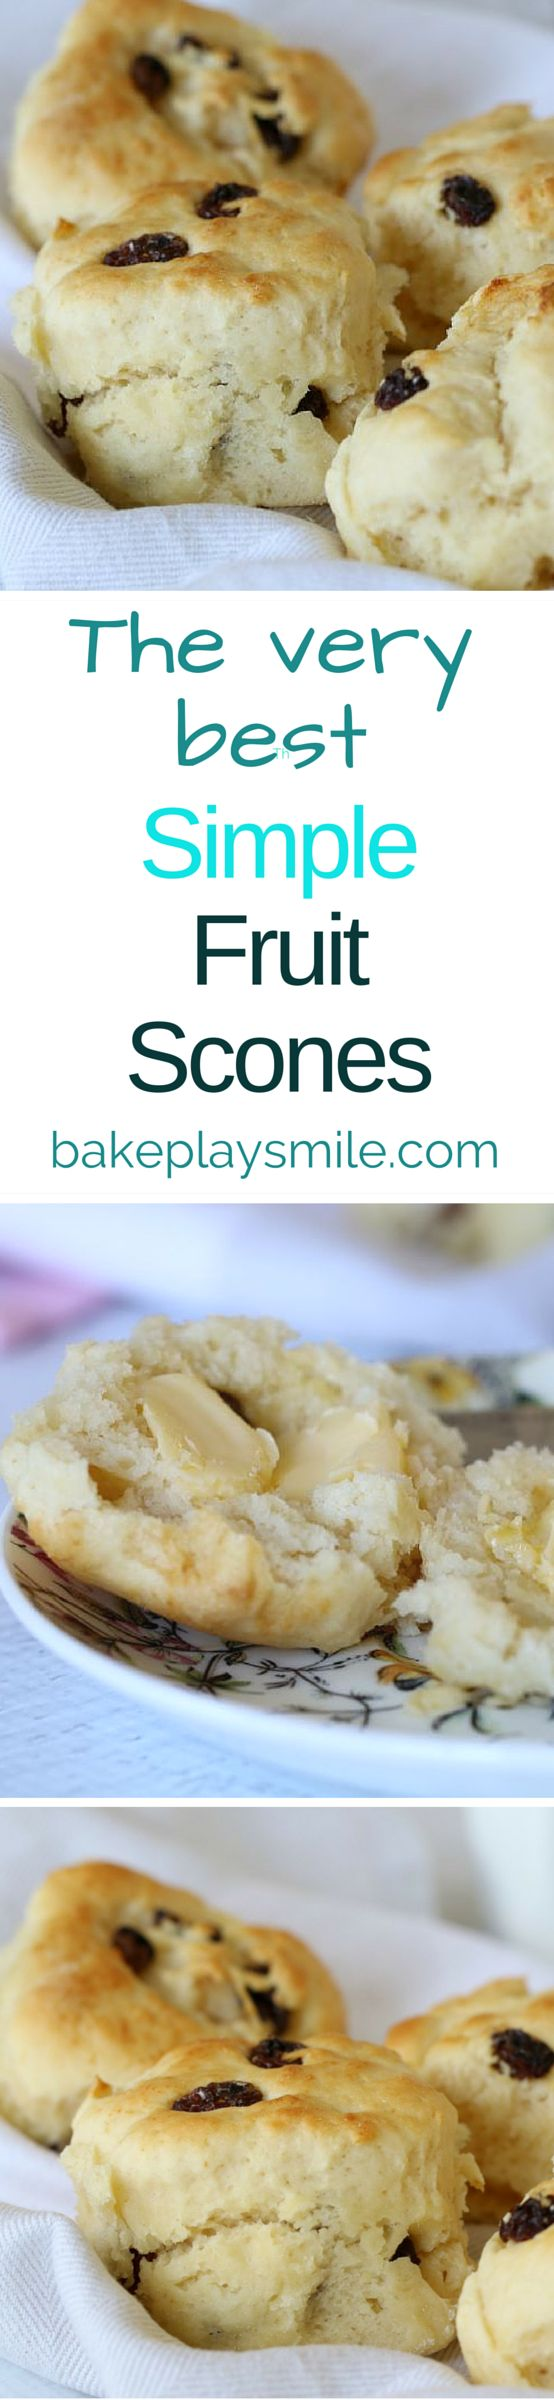 Everyone needs this delicious fruit scone recipe in their life! It has 1 secret ingredient which makes them perfectly soft and fluffy every single time!!! | Bake Play Smile #fruit #scones #easy #recipe